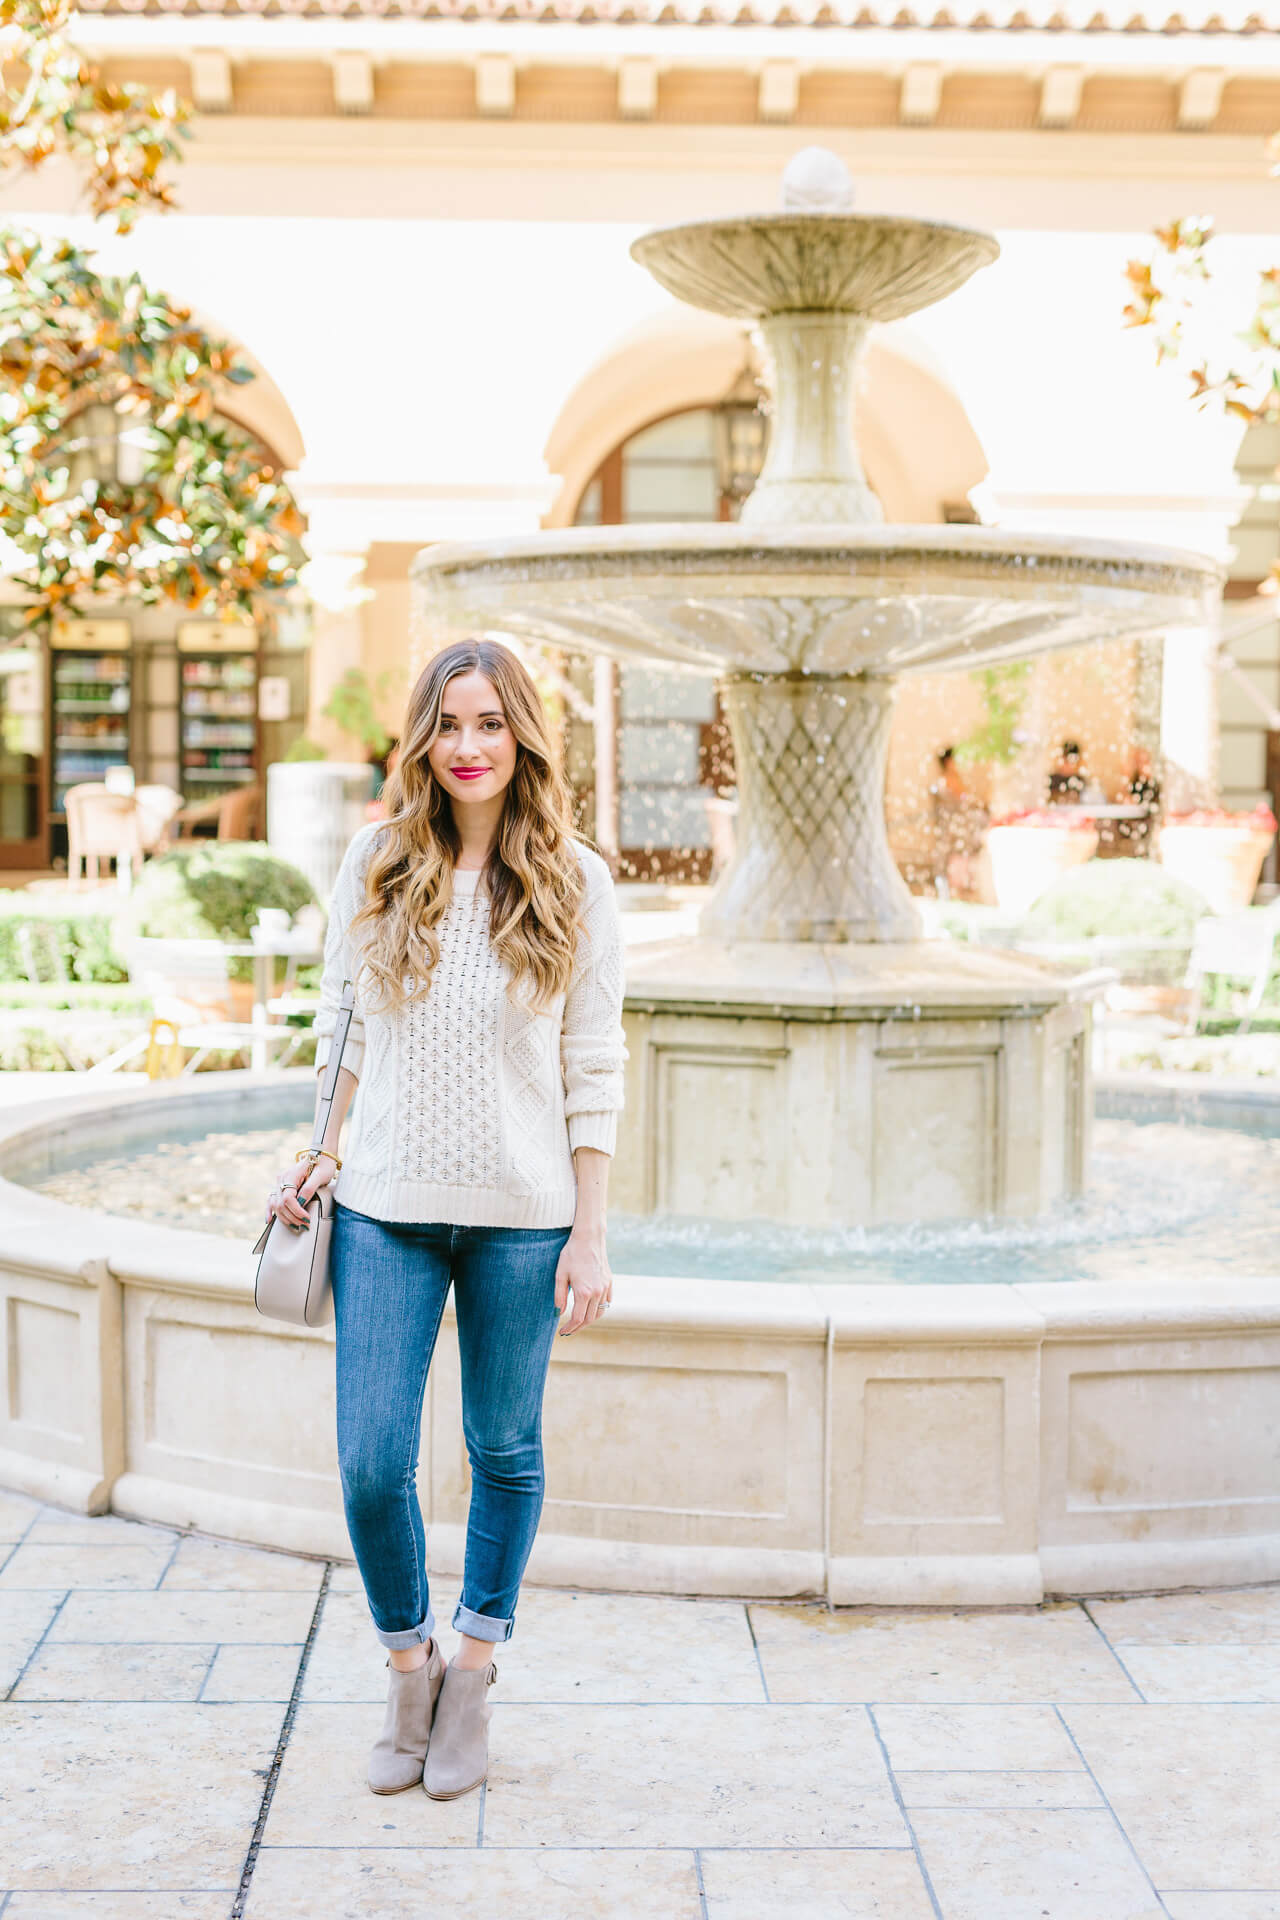 my go-to fall outfit- white knit sweater with jeans and ankle booties